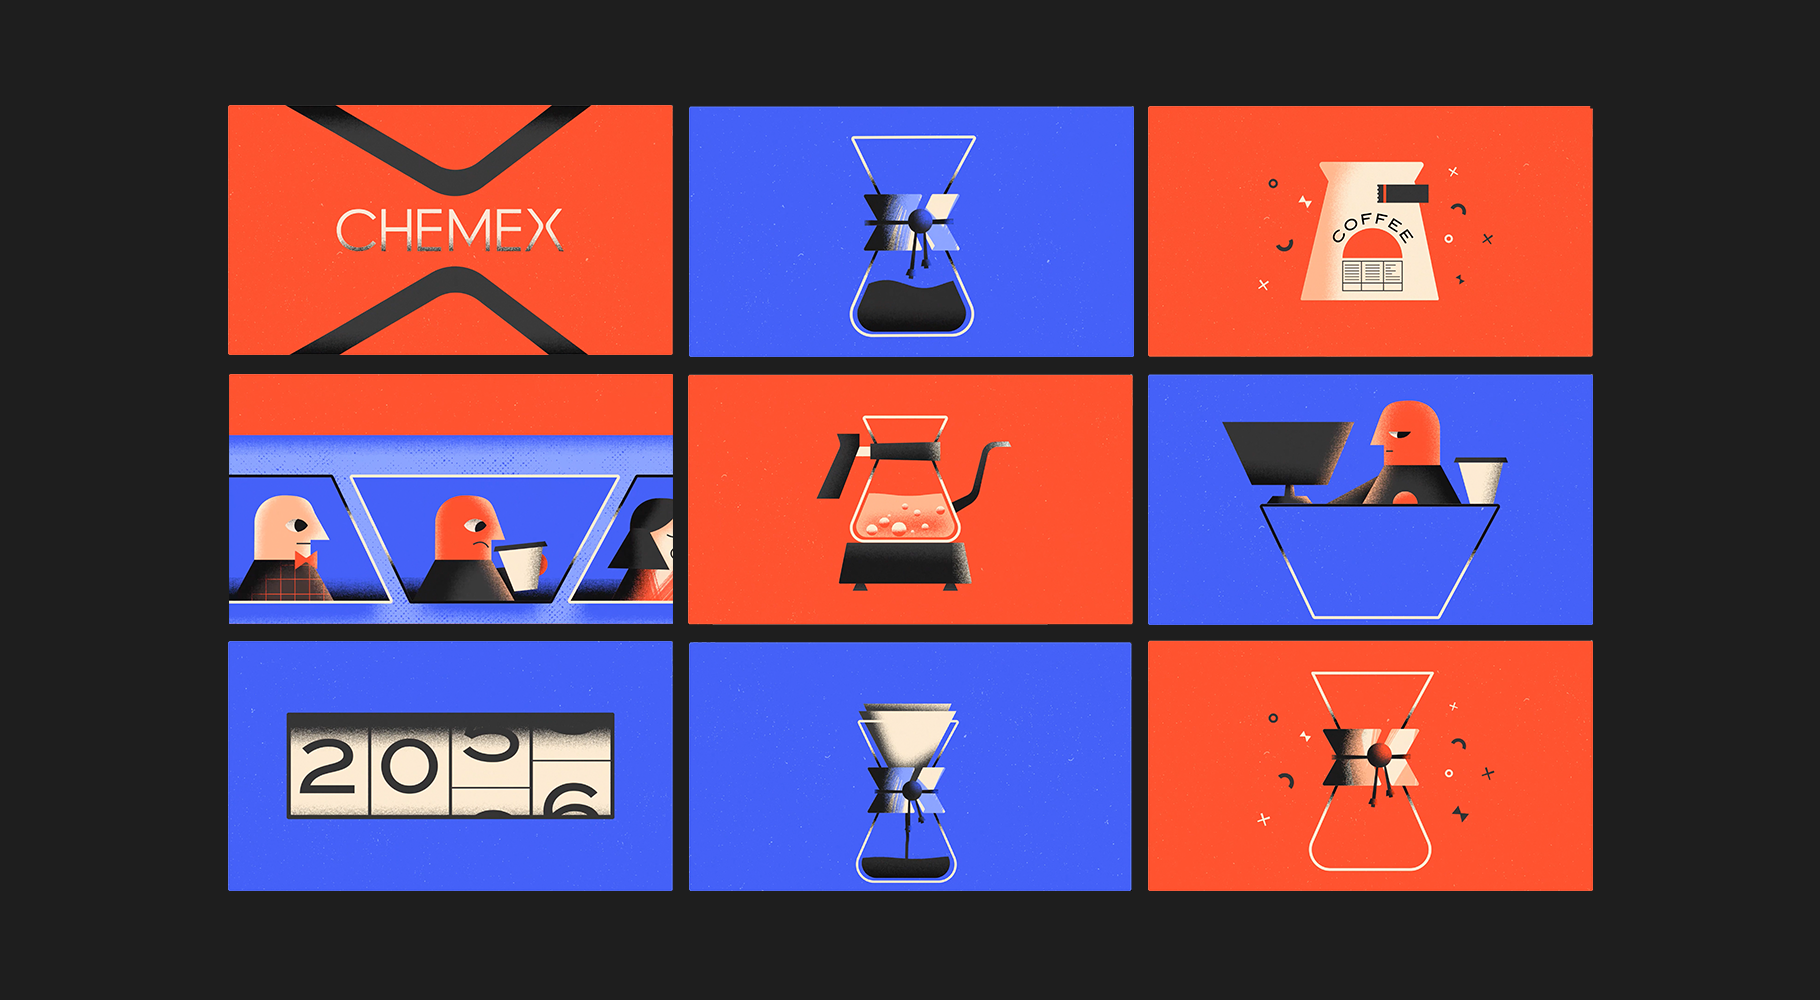 An image of style frames for a Chemex video. The frames are bright orange, purple and black and feature grainy, Bauhaus inspired illustrations.